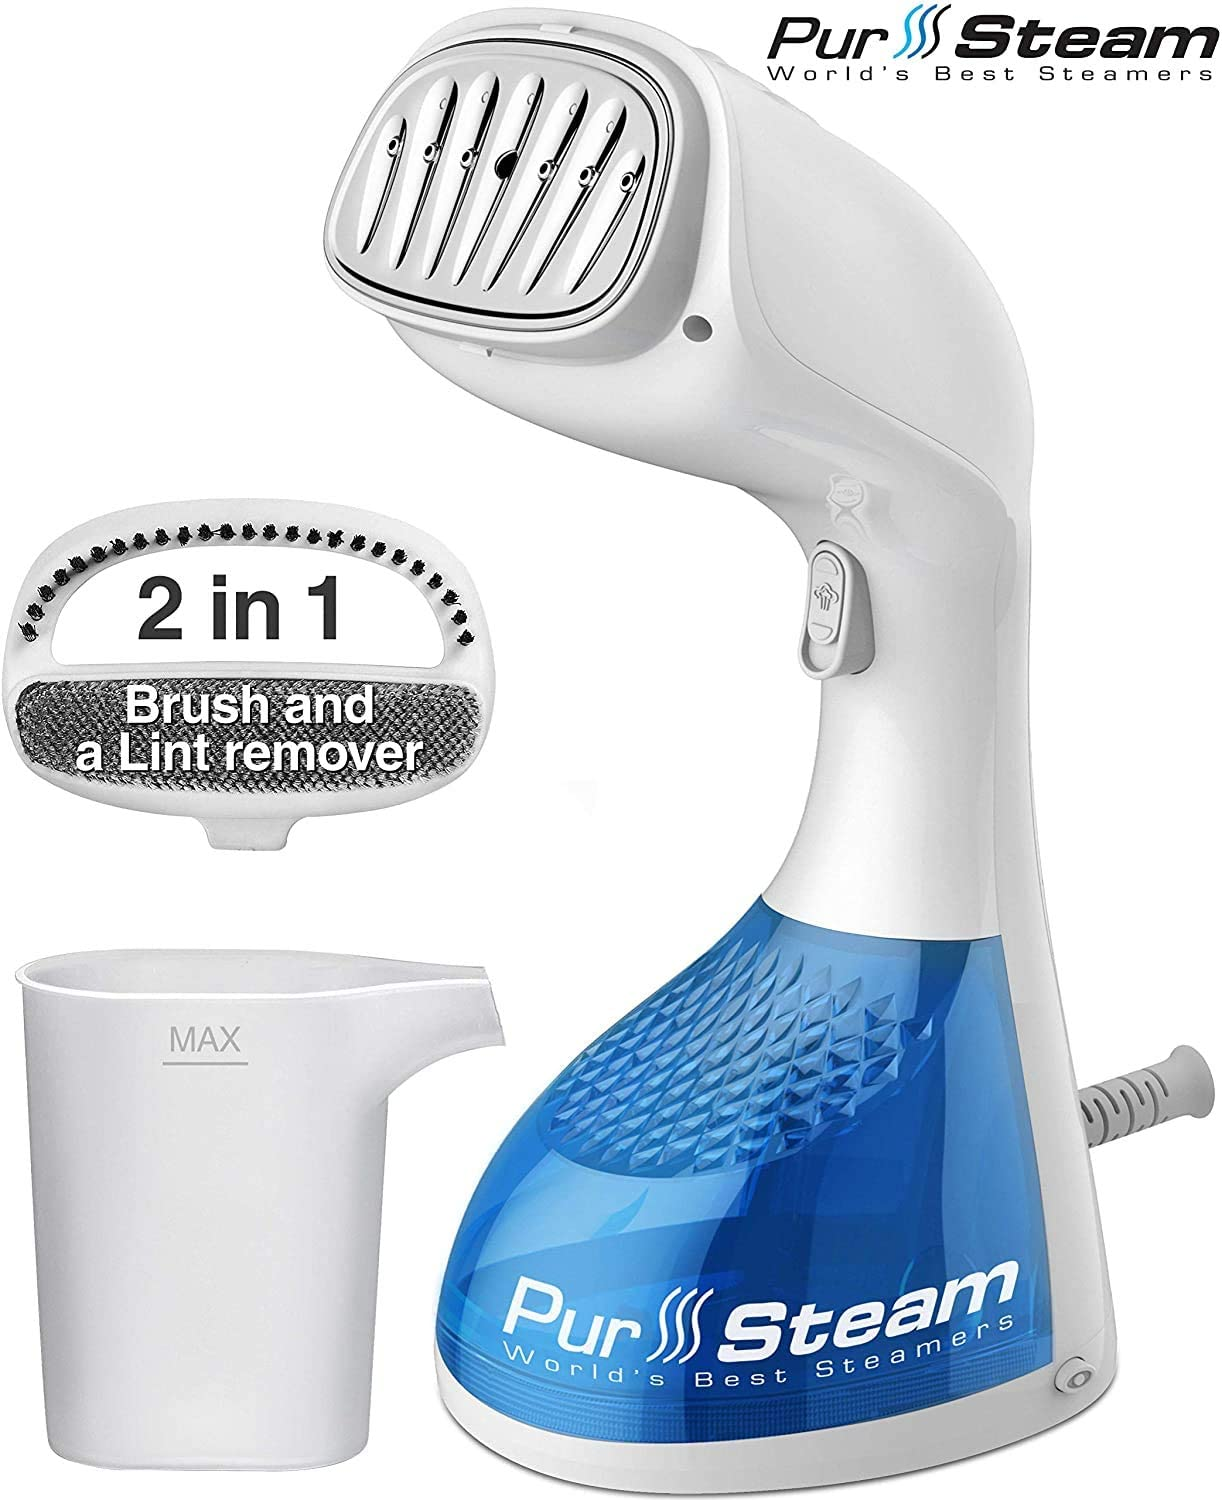 PurSteam 1400-Watt Steamer With 2-In-1 Brush